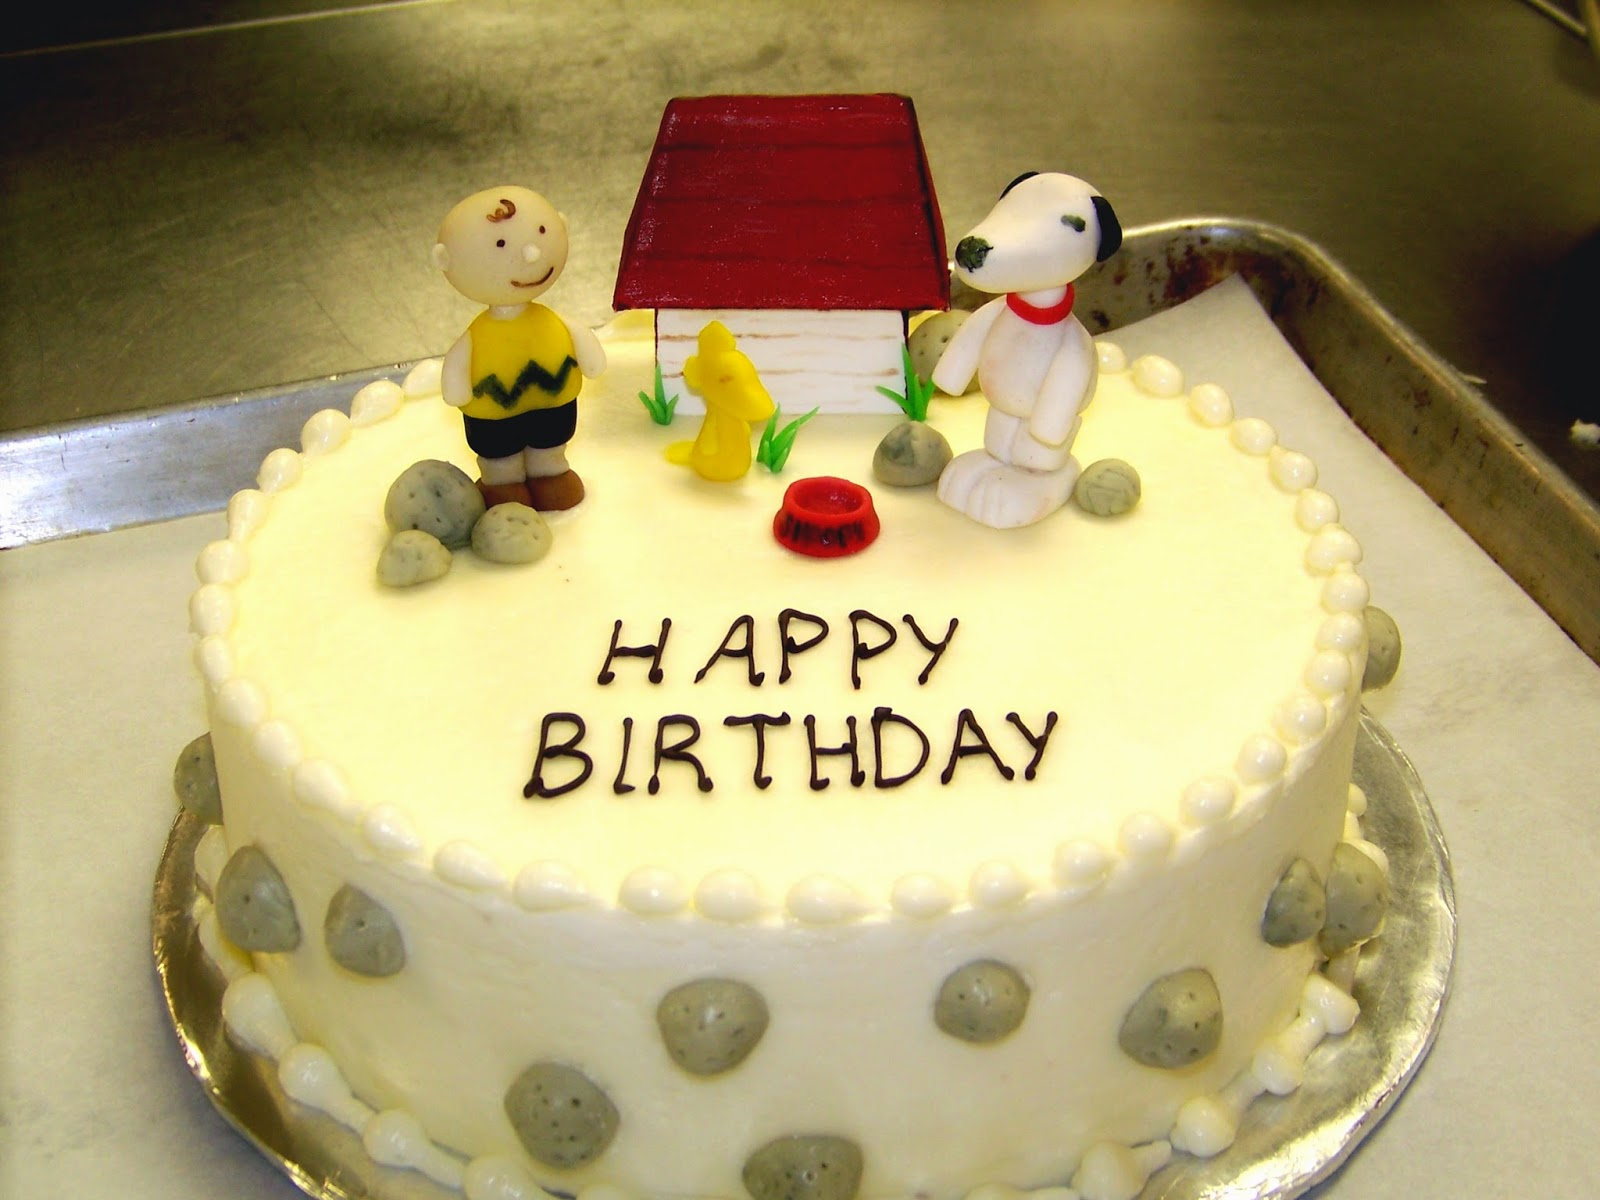 Top 10 Photo Gallery Happy Birthday Cake Hd Wallpaper Collections